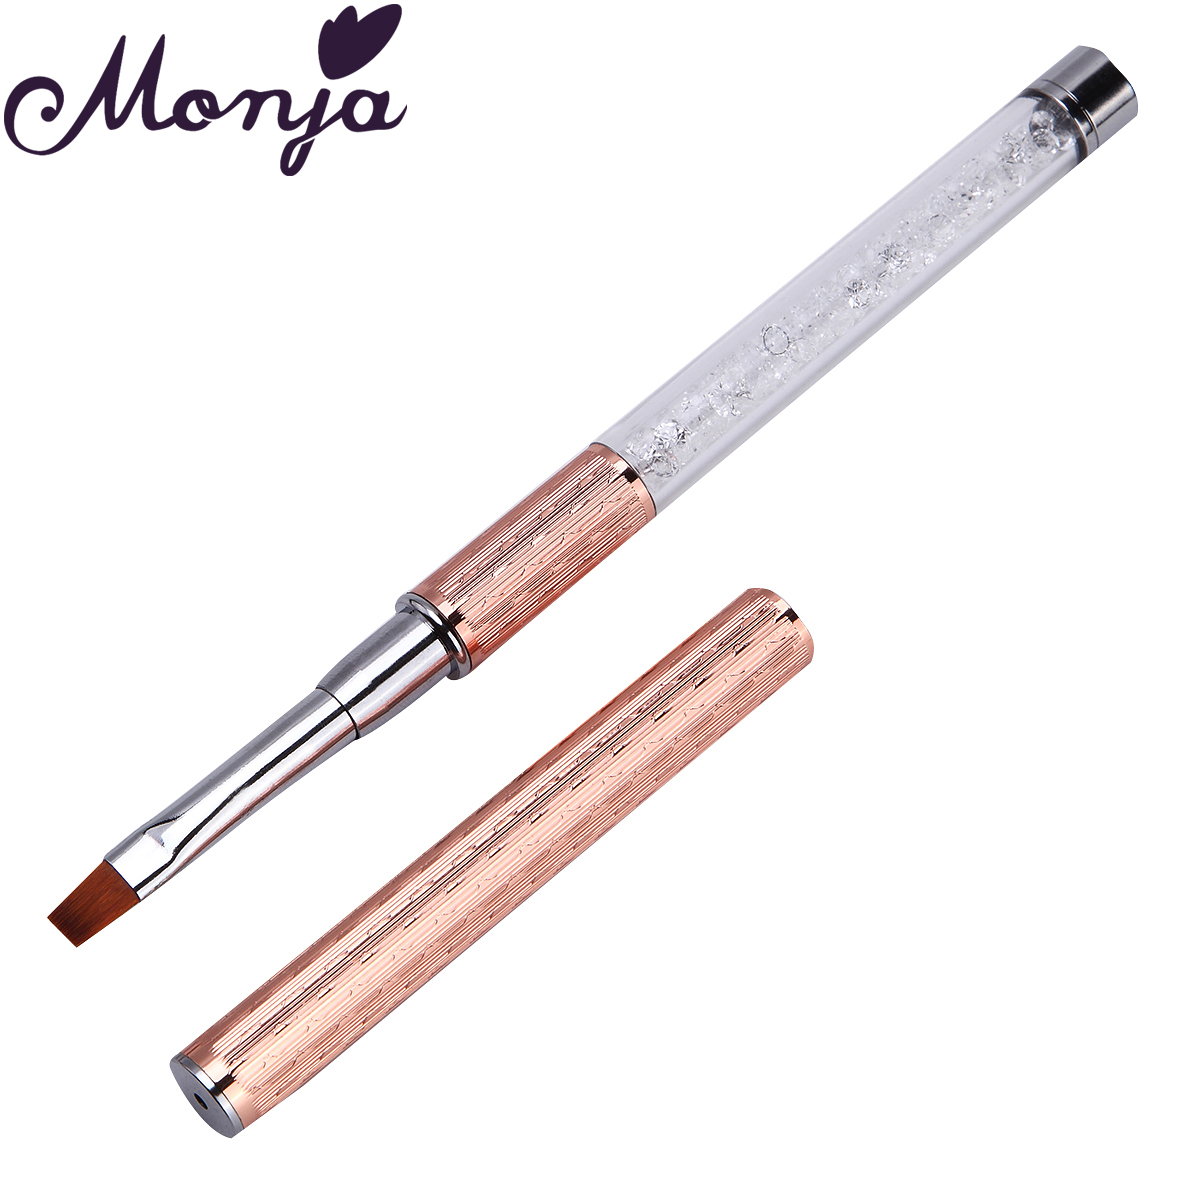 Monja Nail Art Brush Made Of Acrylic Rhinestone Handle Material For Nail Liner Brush Tool 7